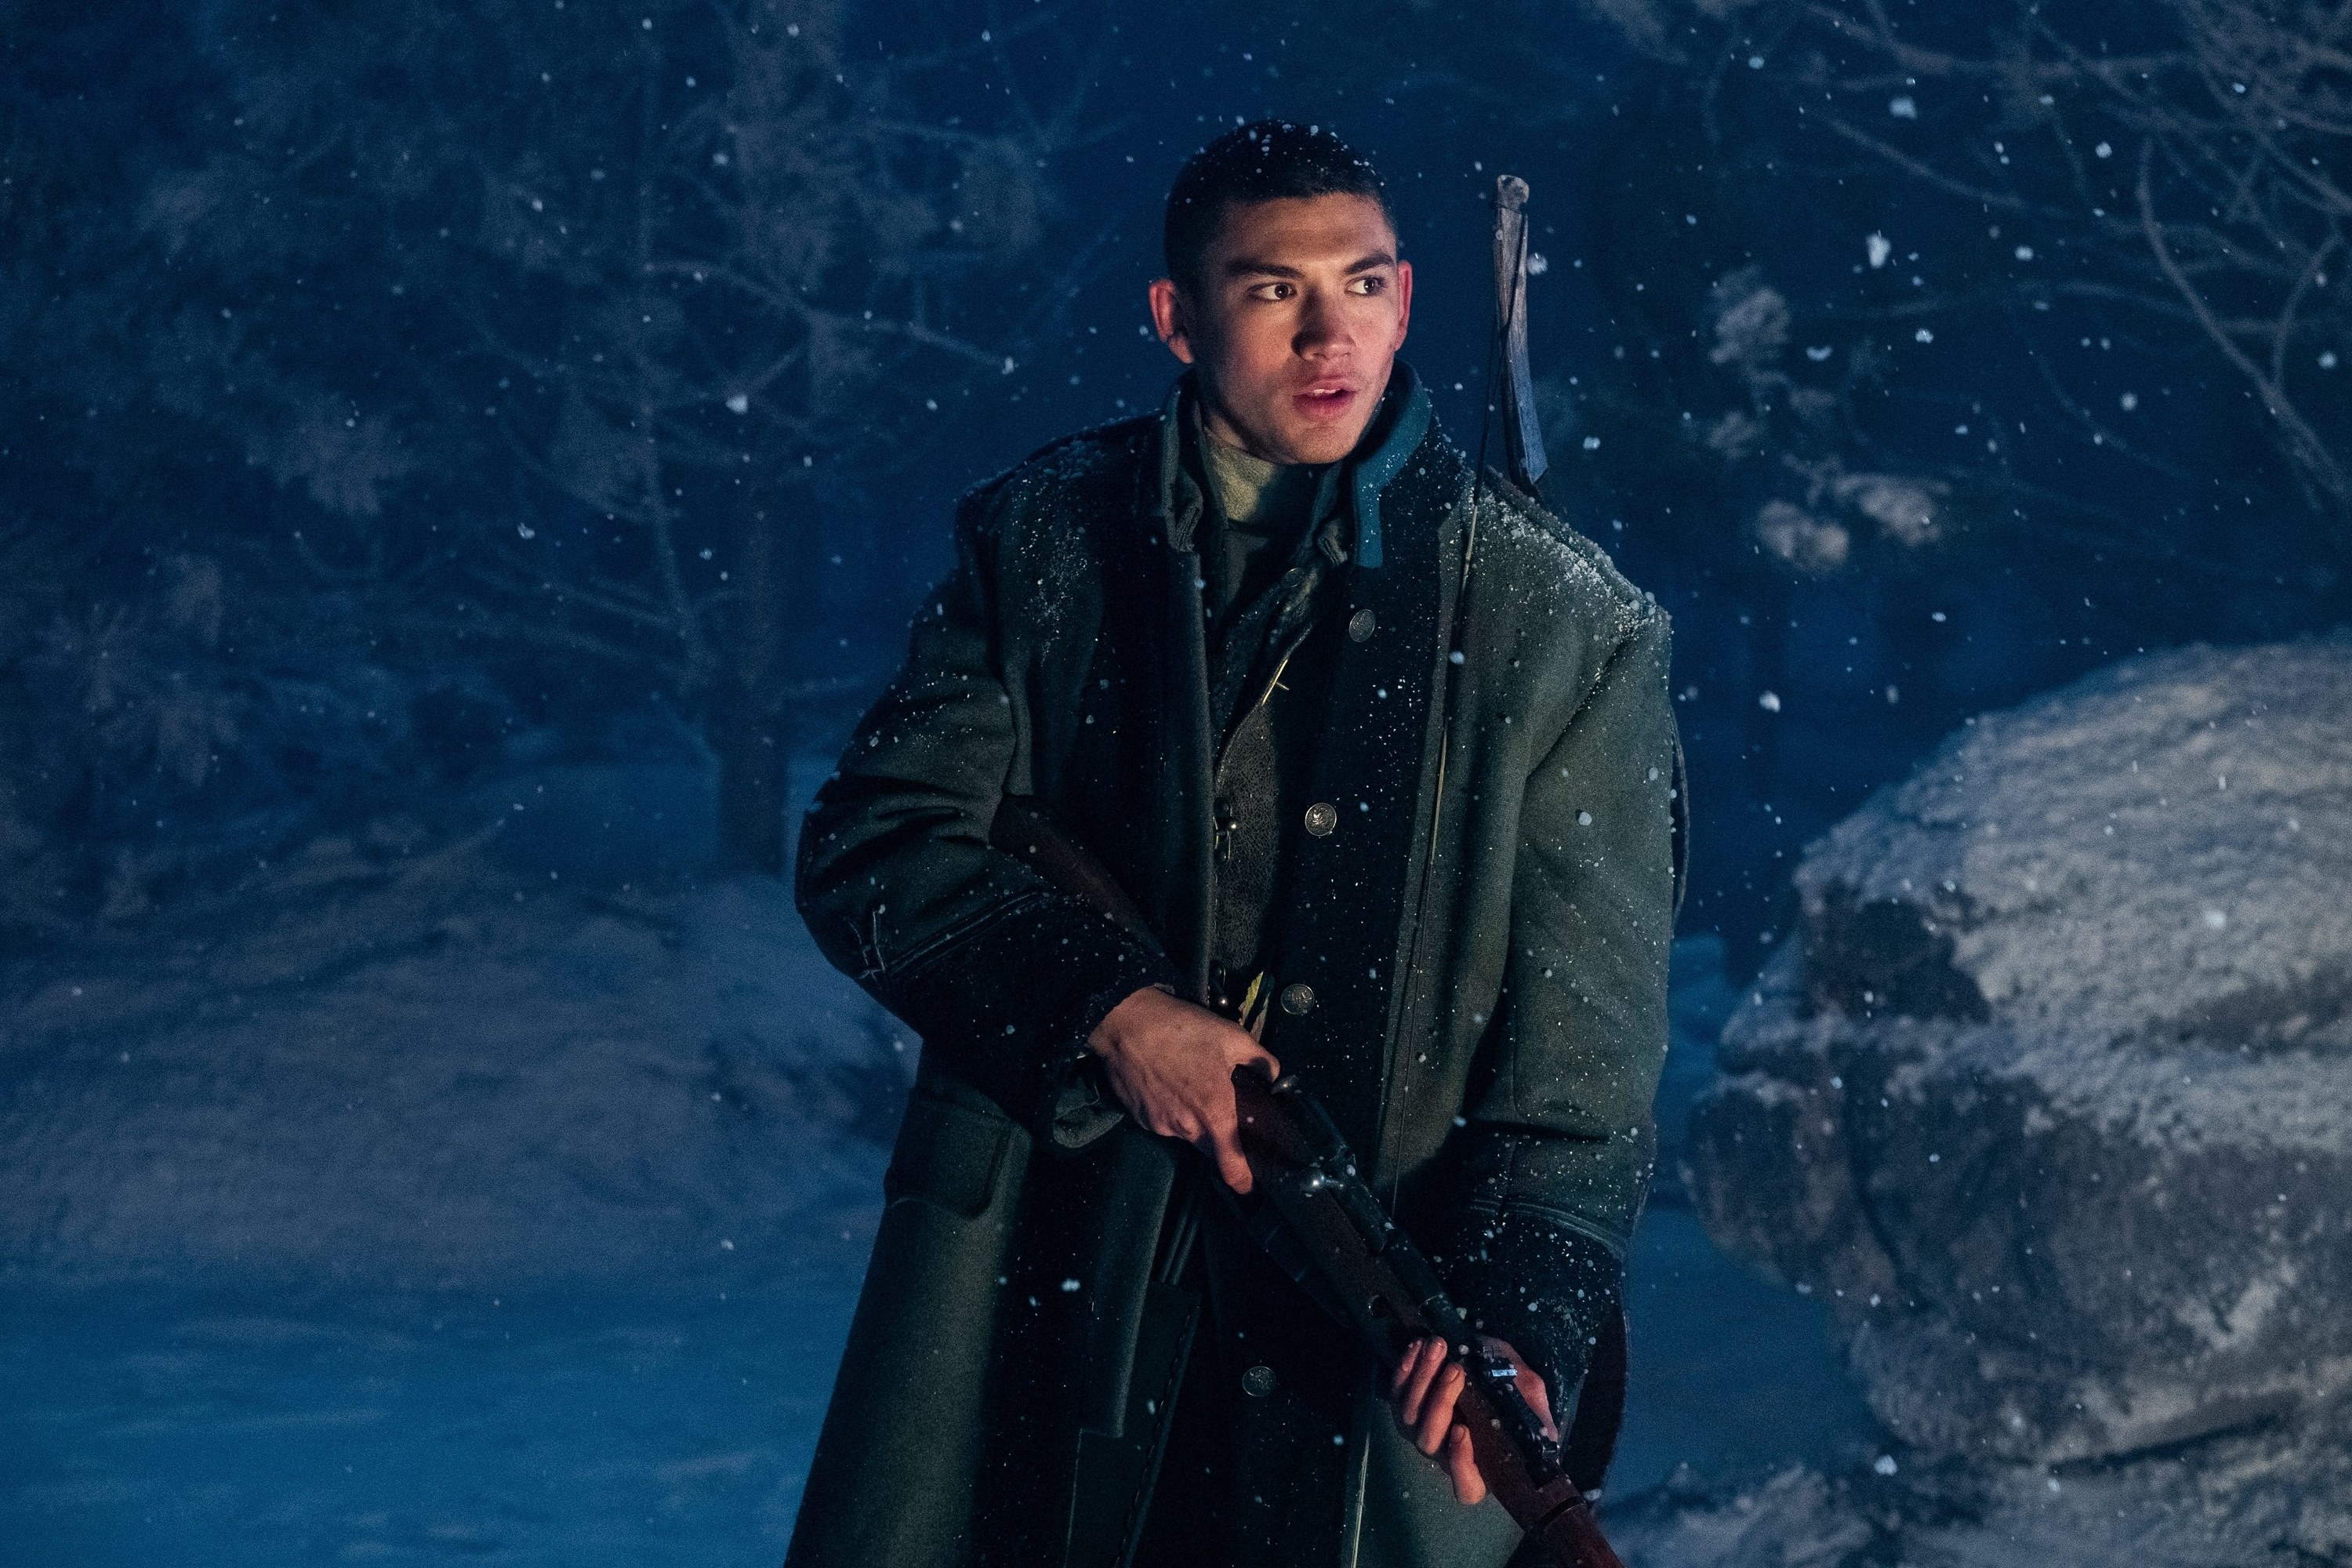 Archie Renaux as Malyen Oretsev holding a gun in a snow-y clearing